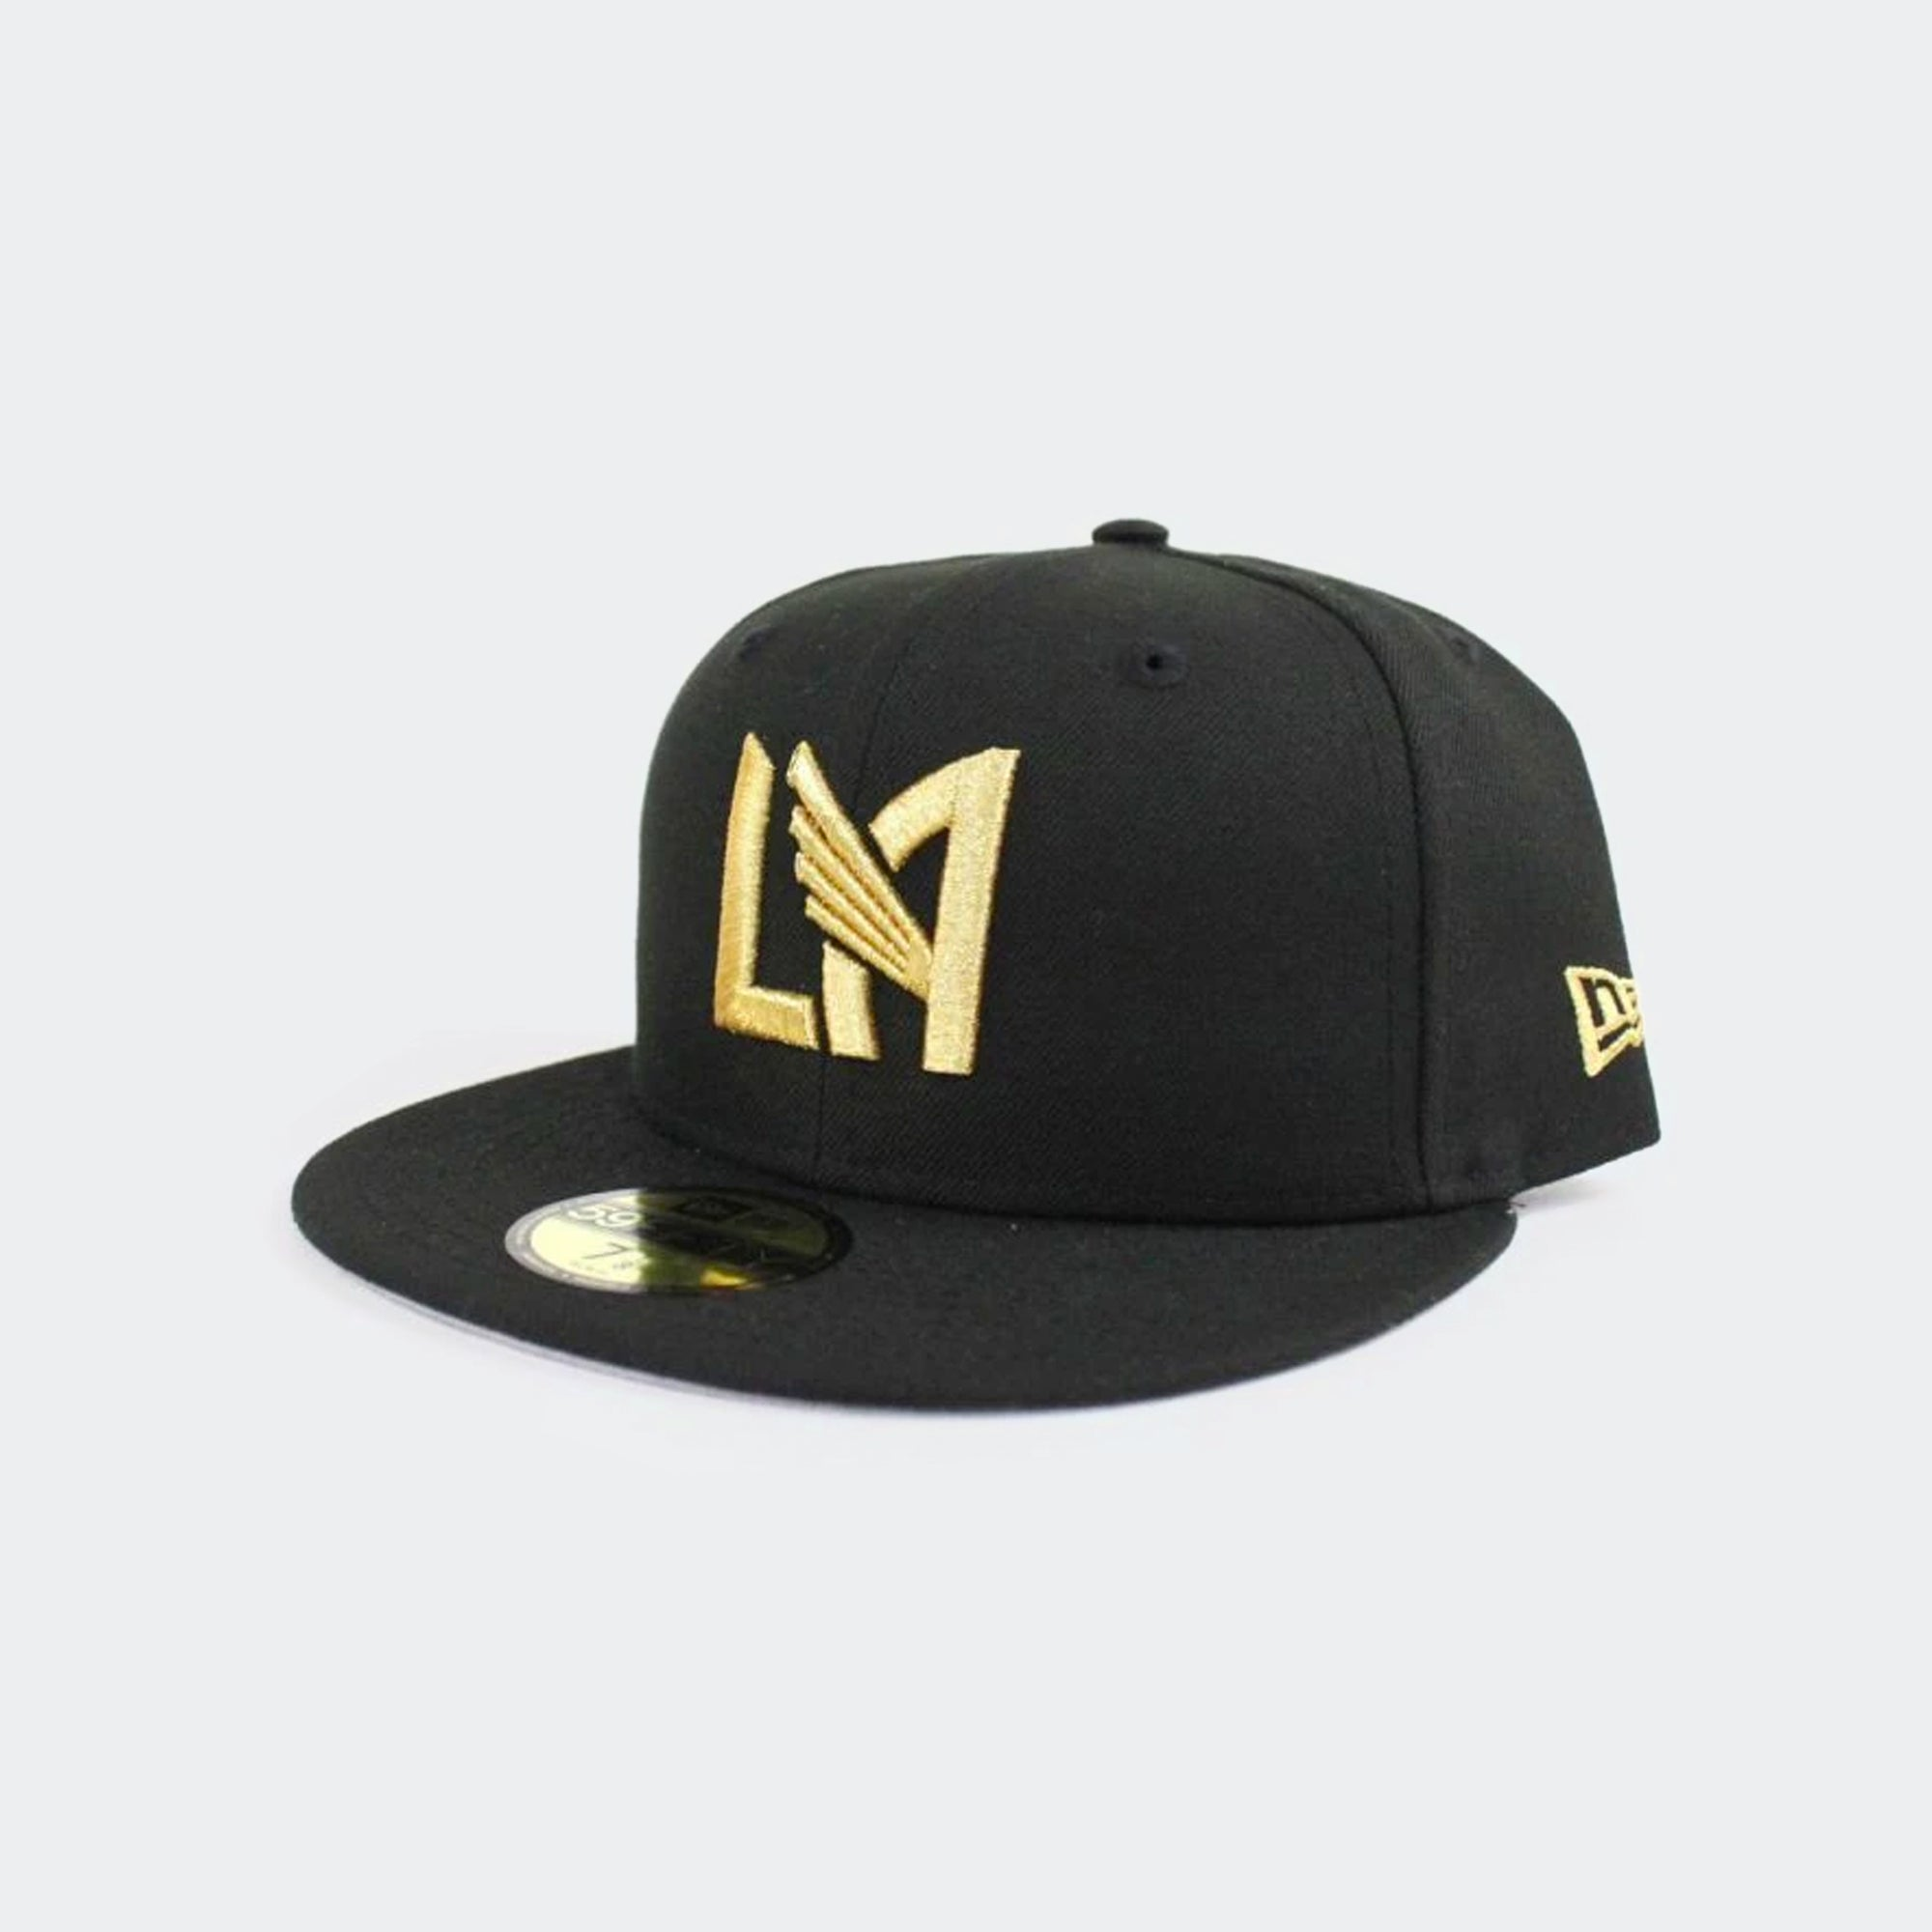 LAFC Fitted 5950 Basic Hat - No MLS Logo